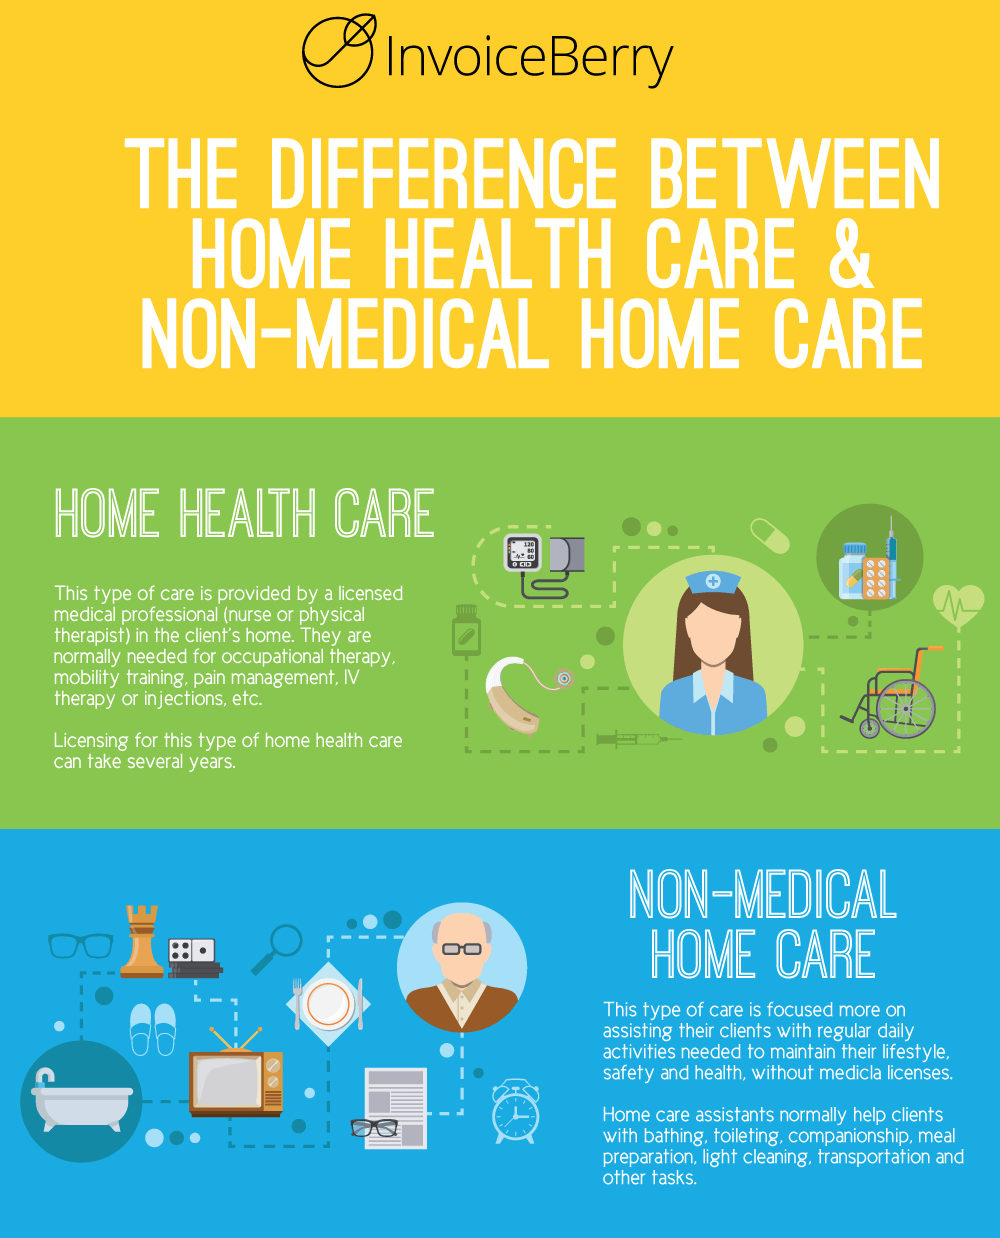 These are the differences between home health care and non-medical home care